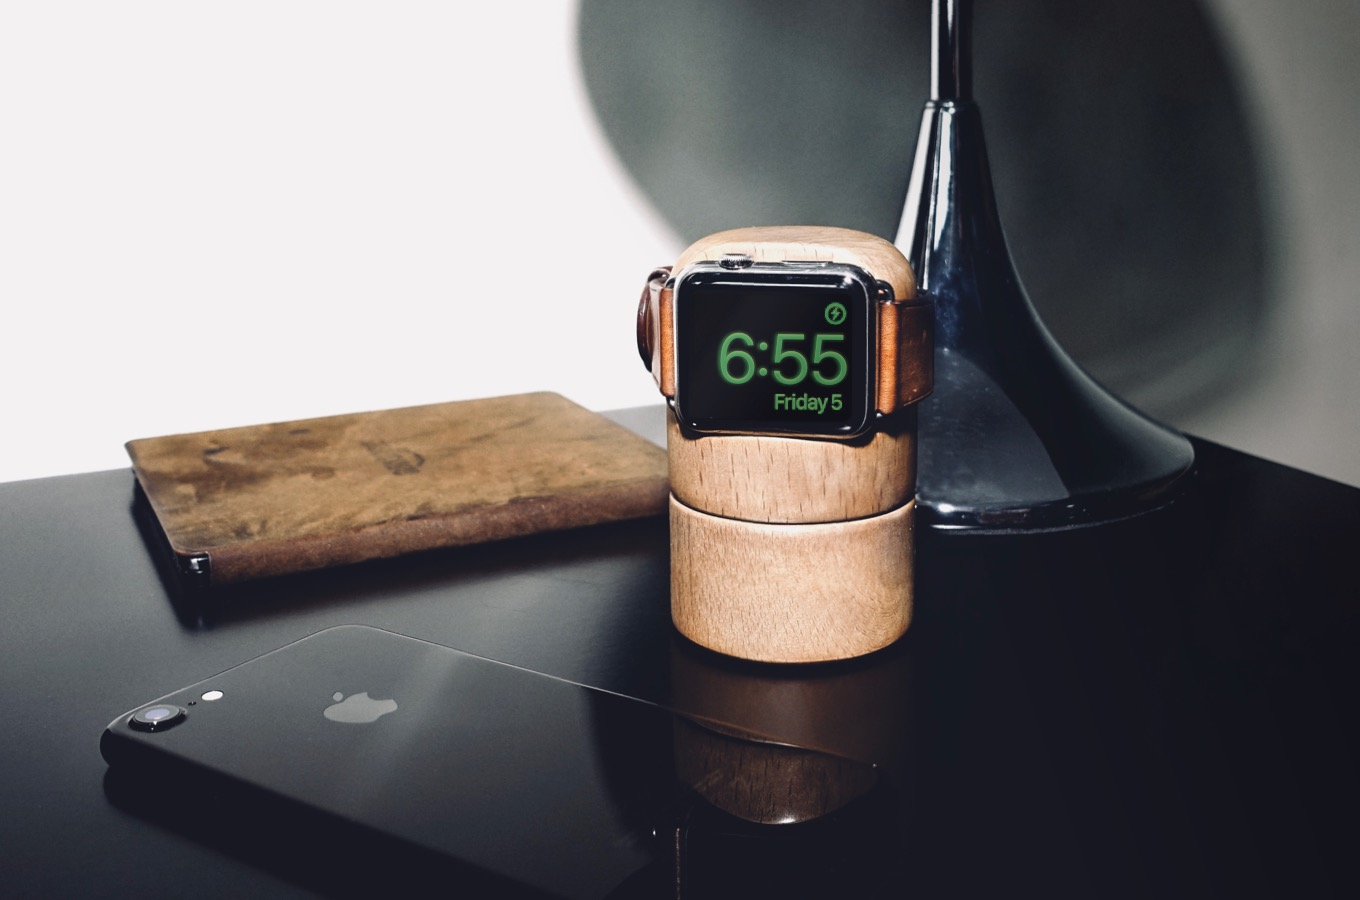 Totm+Travl Apple Watch Stand